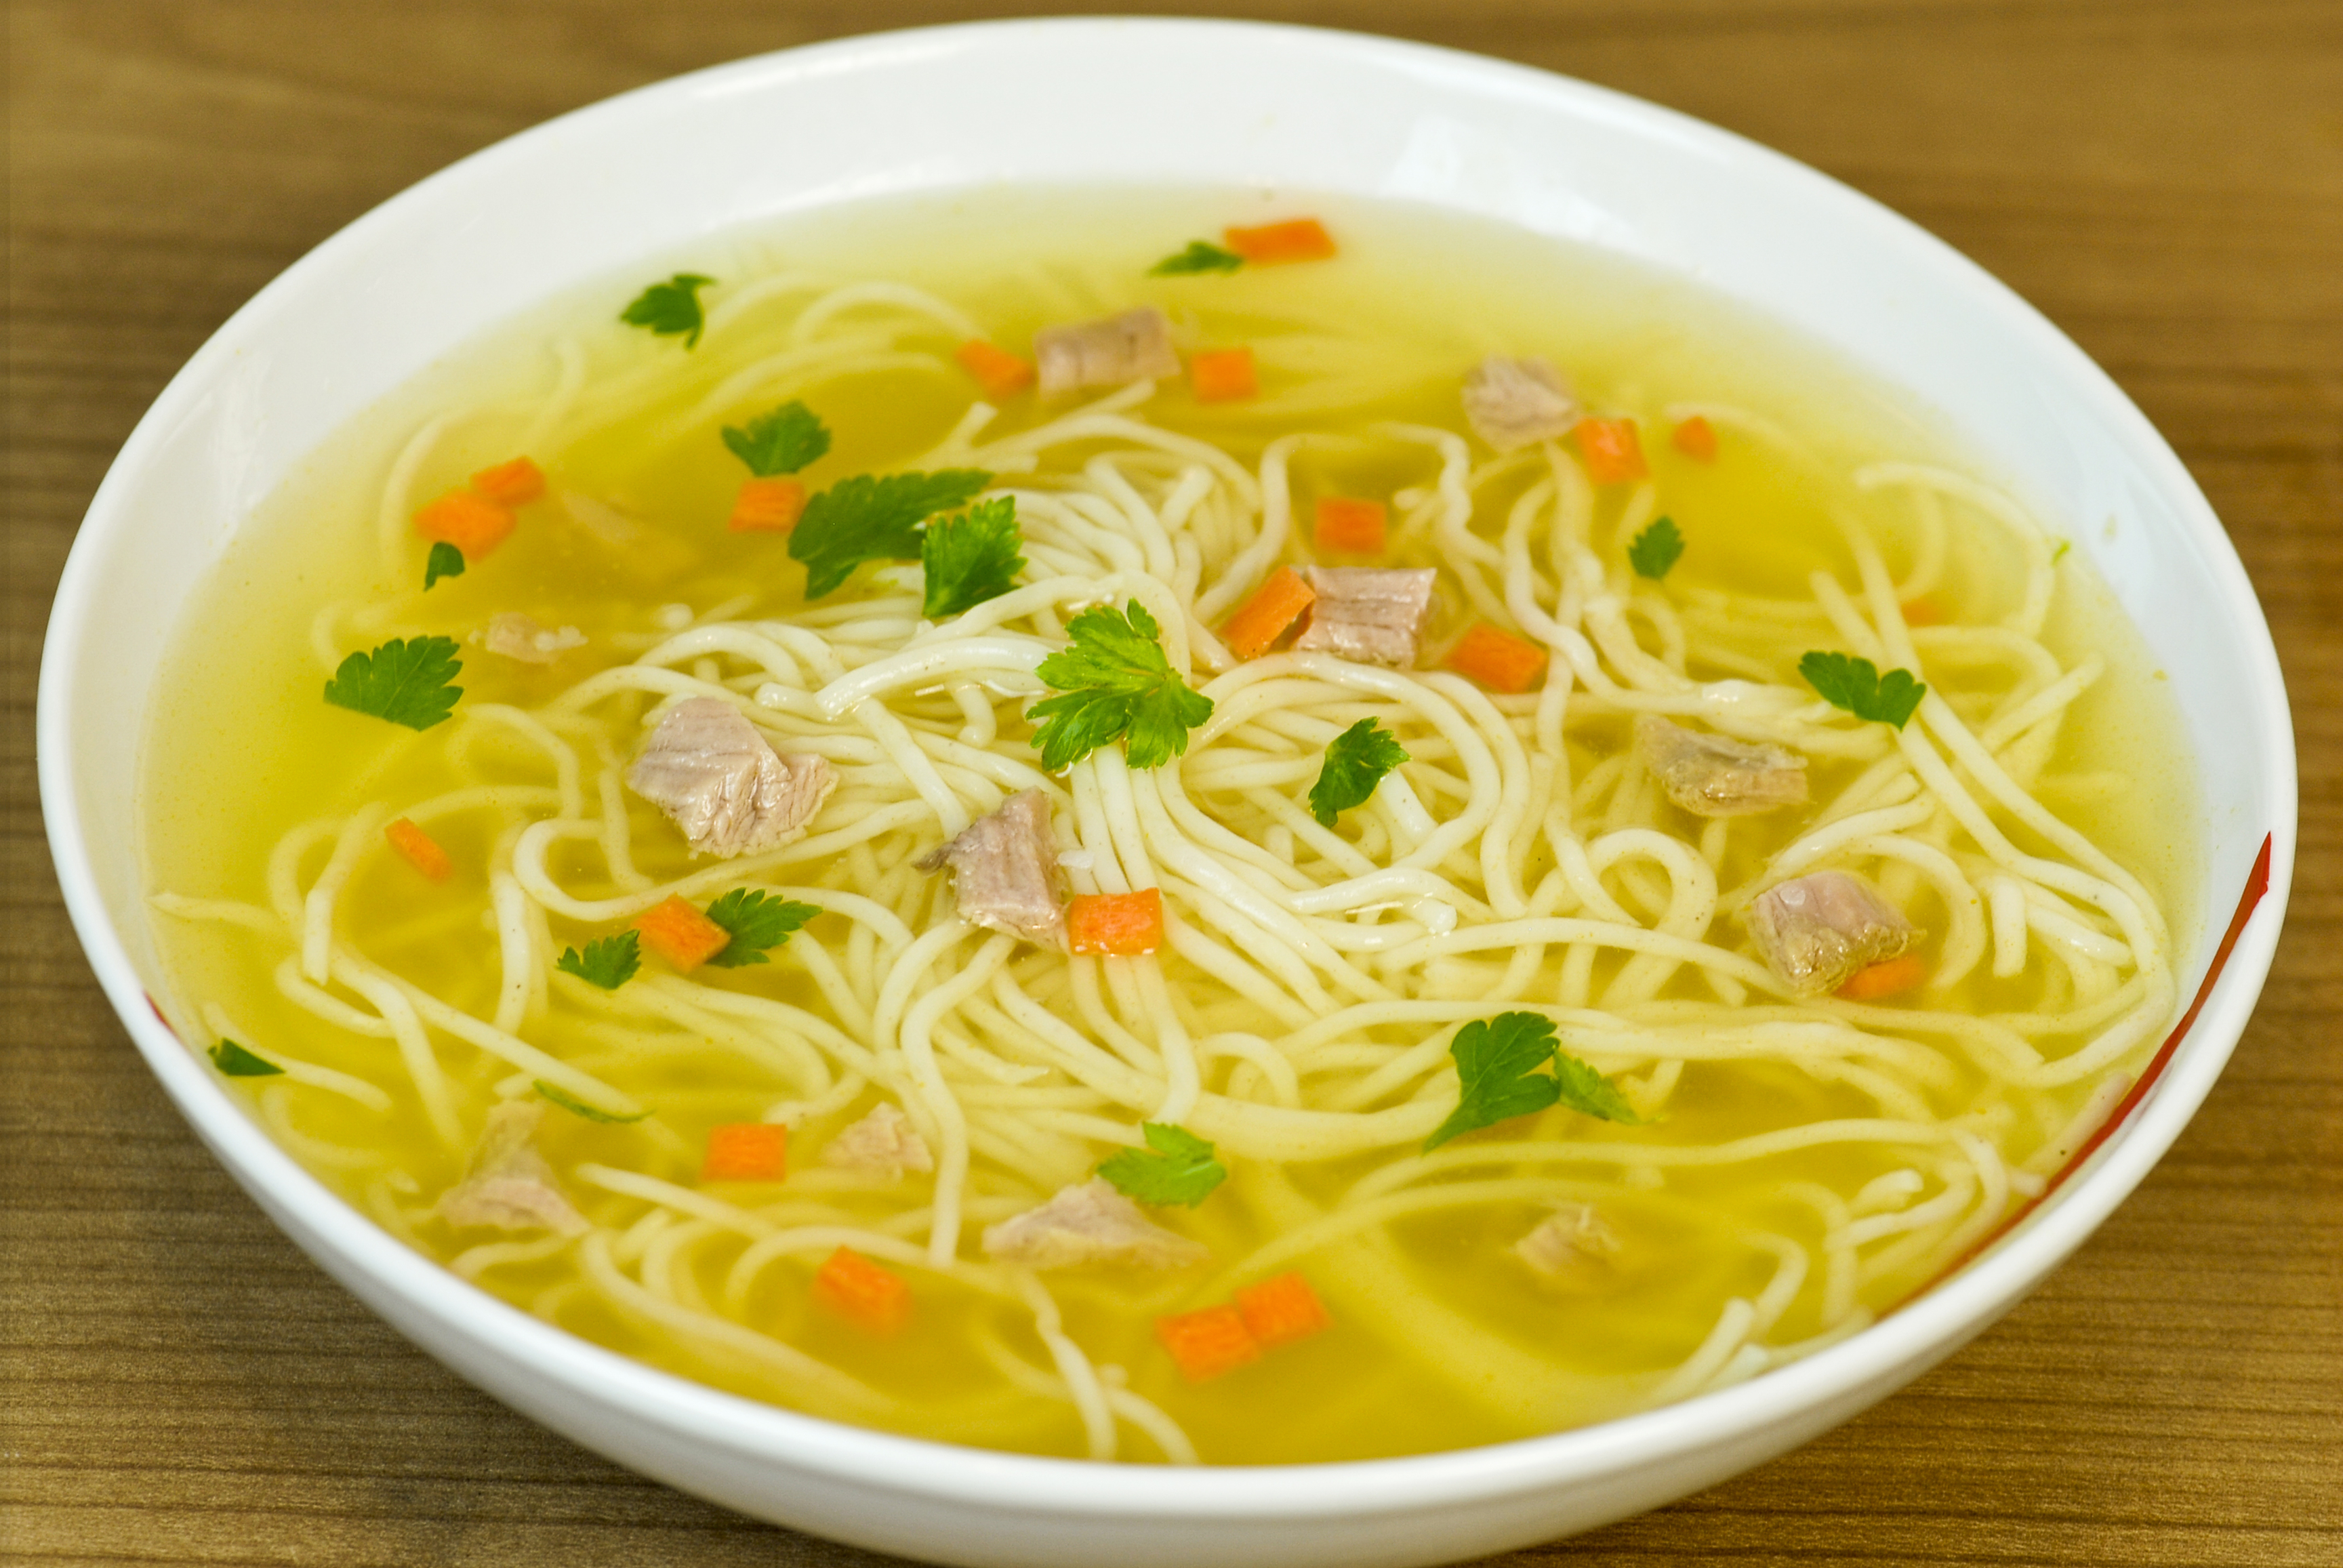 Chicken noodle soup thin noodles